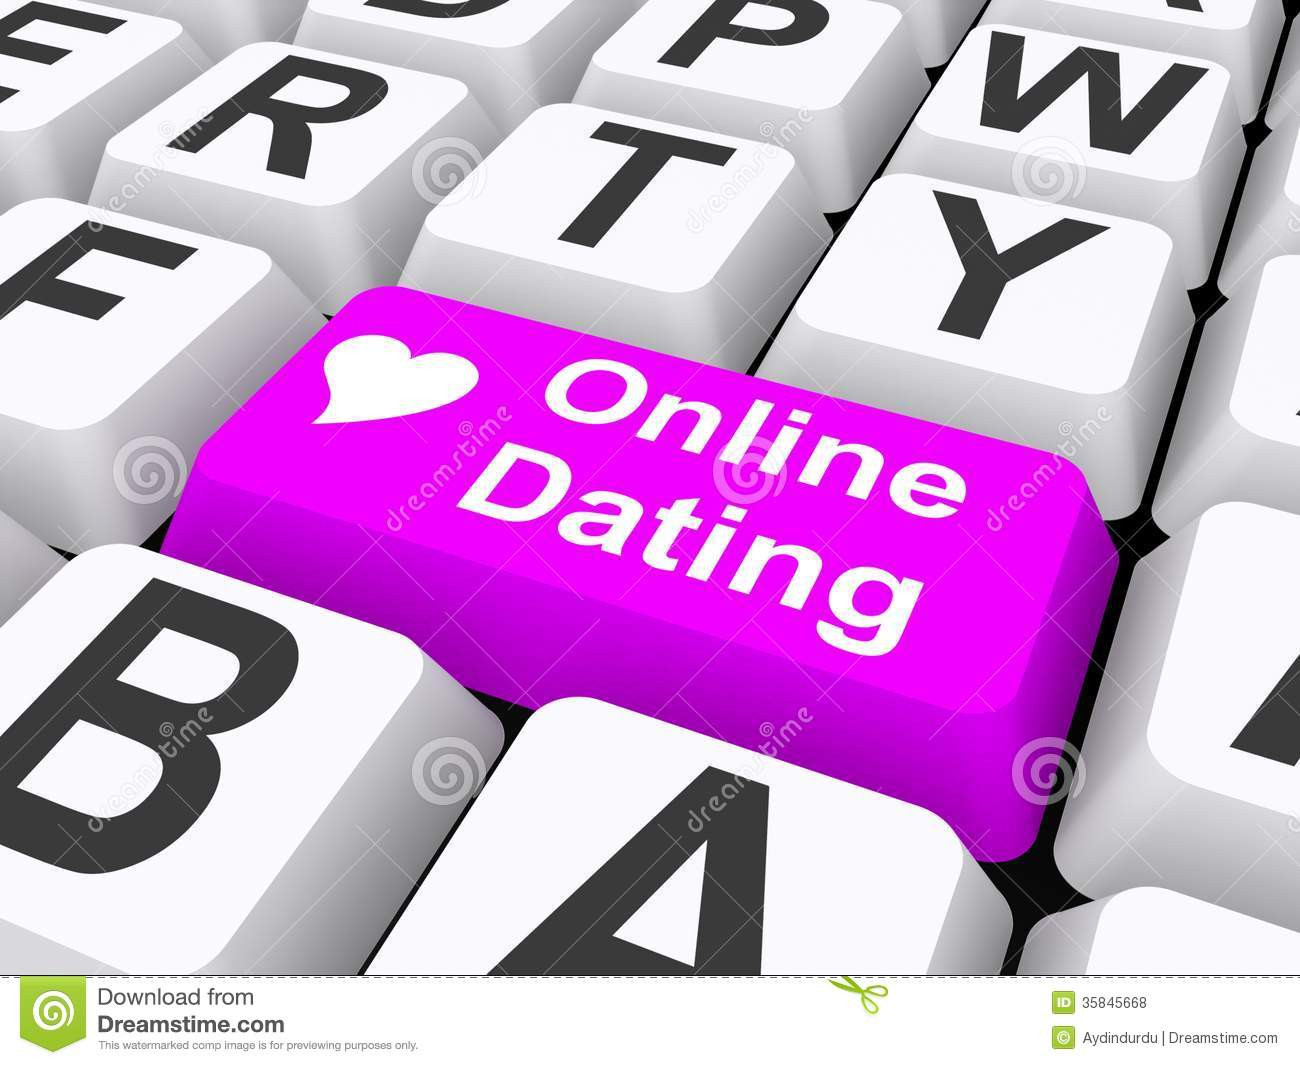 free online personals in king 100% free king of prussia (pennsylvania) dating site for local single men and women join one of the best american online singles service and meet lonely people to date and chat in king of prussia(united states).